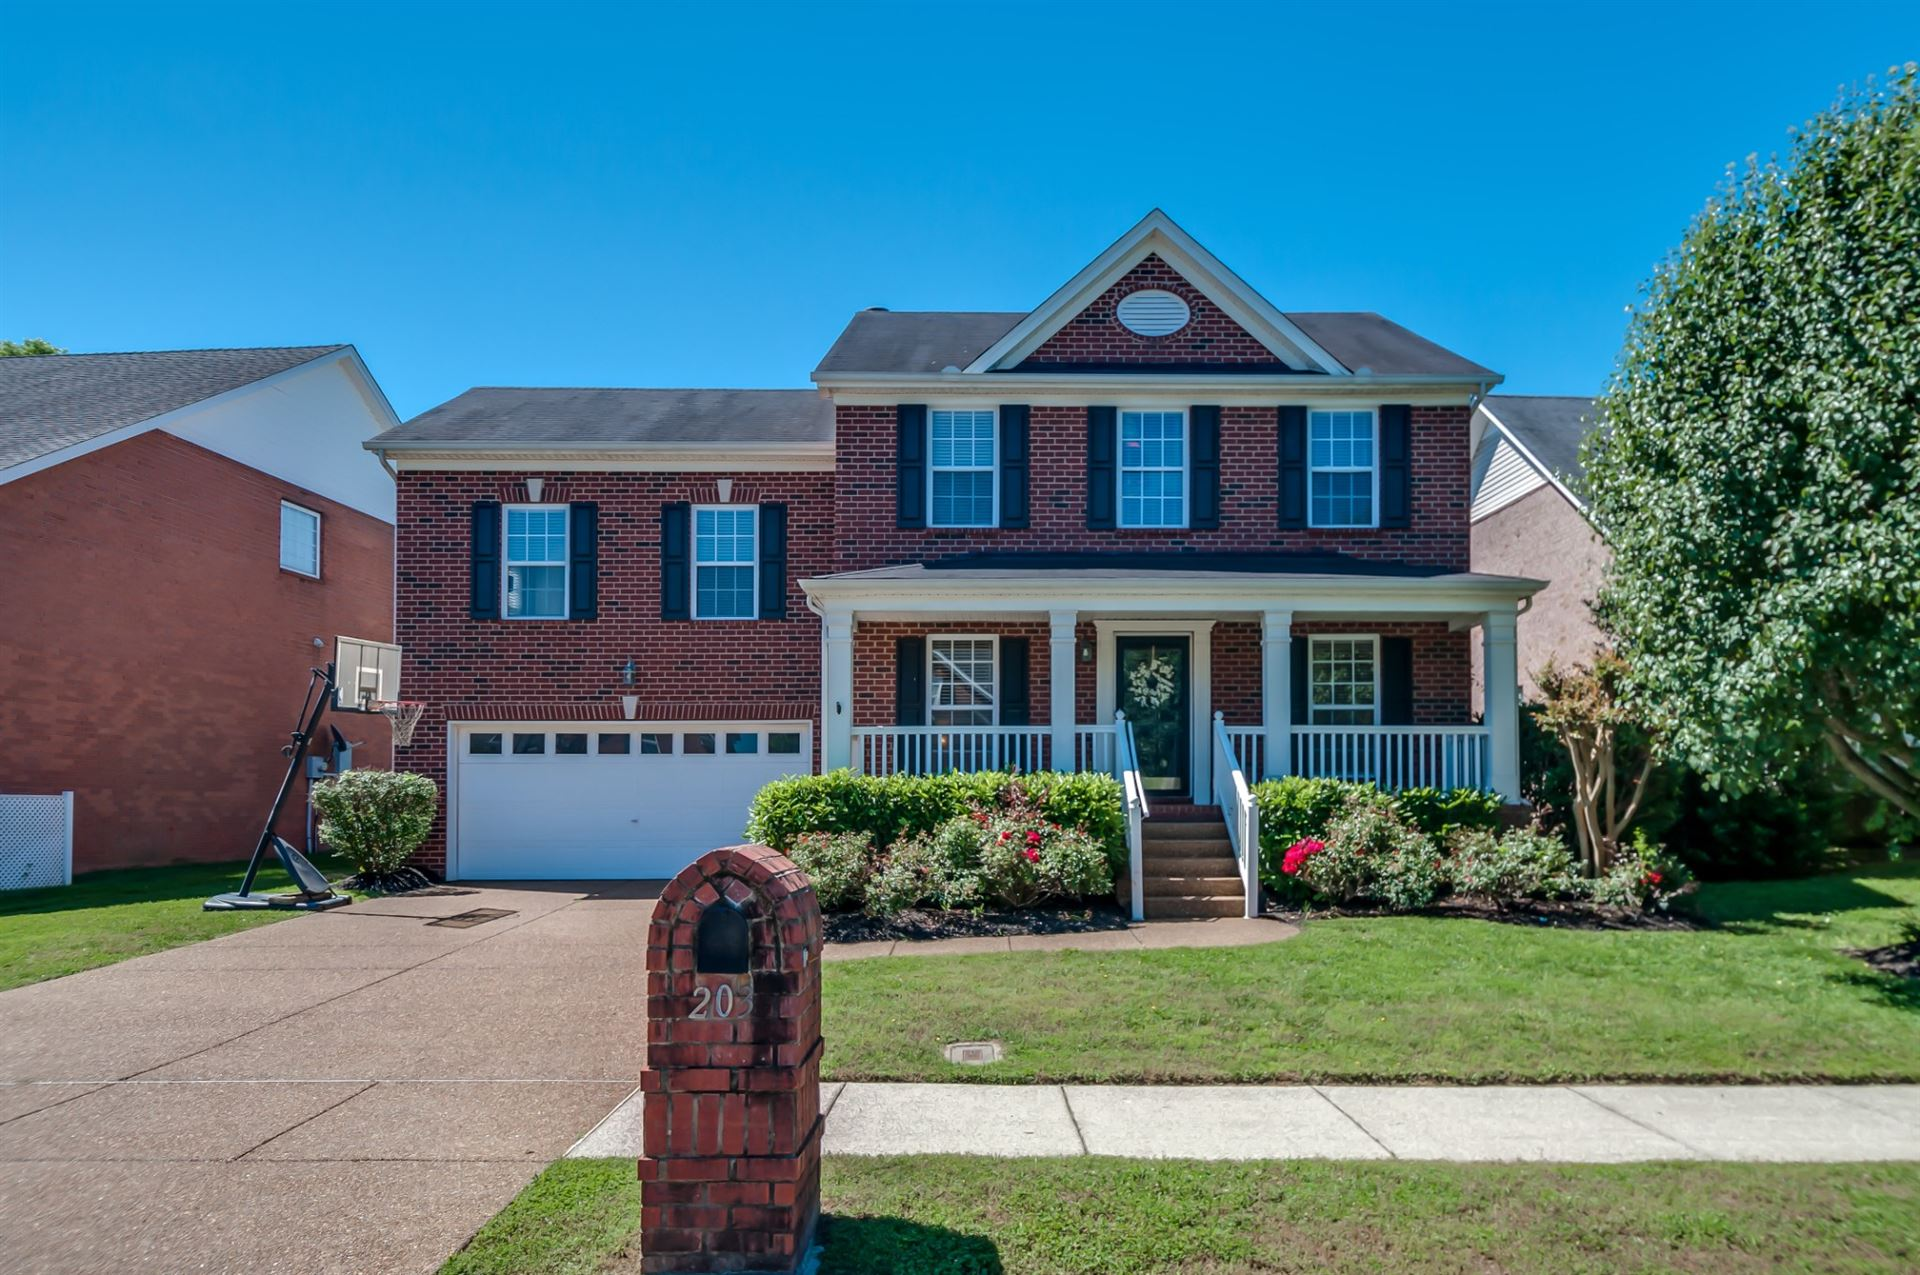 Photo of 203 Camellia Ct, Franklin, TN 37064 (MLS # 2156079)